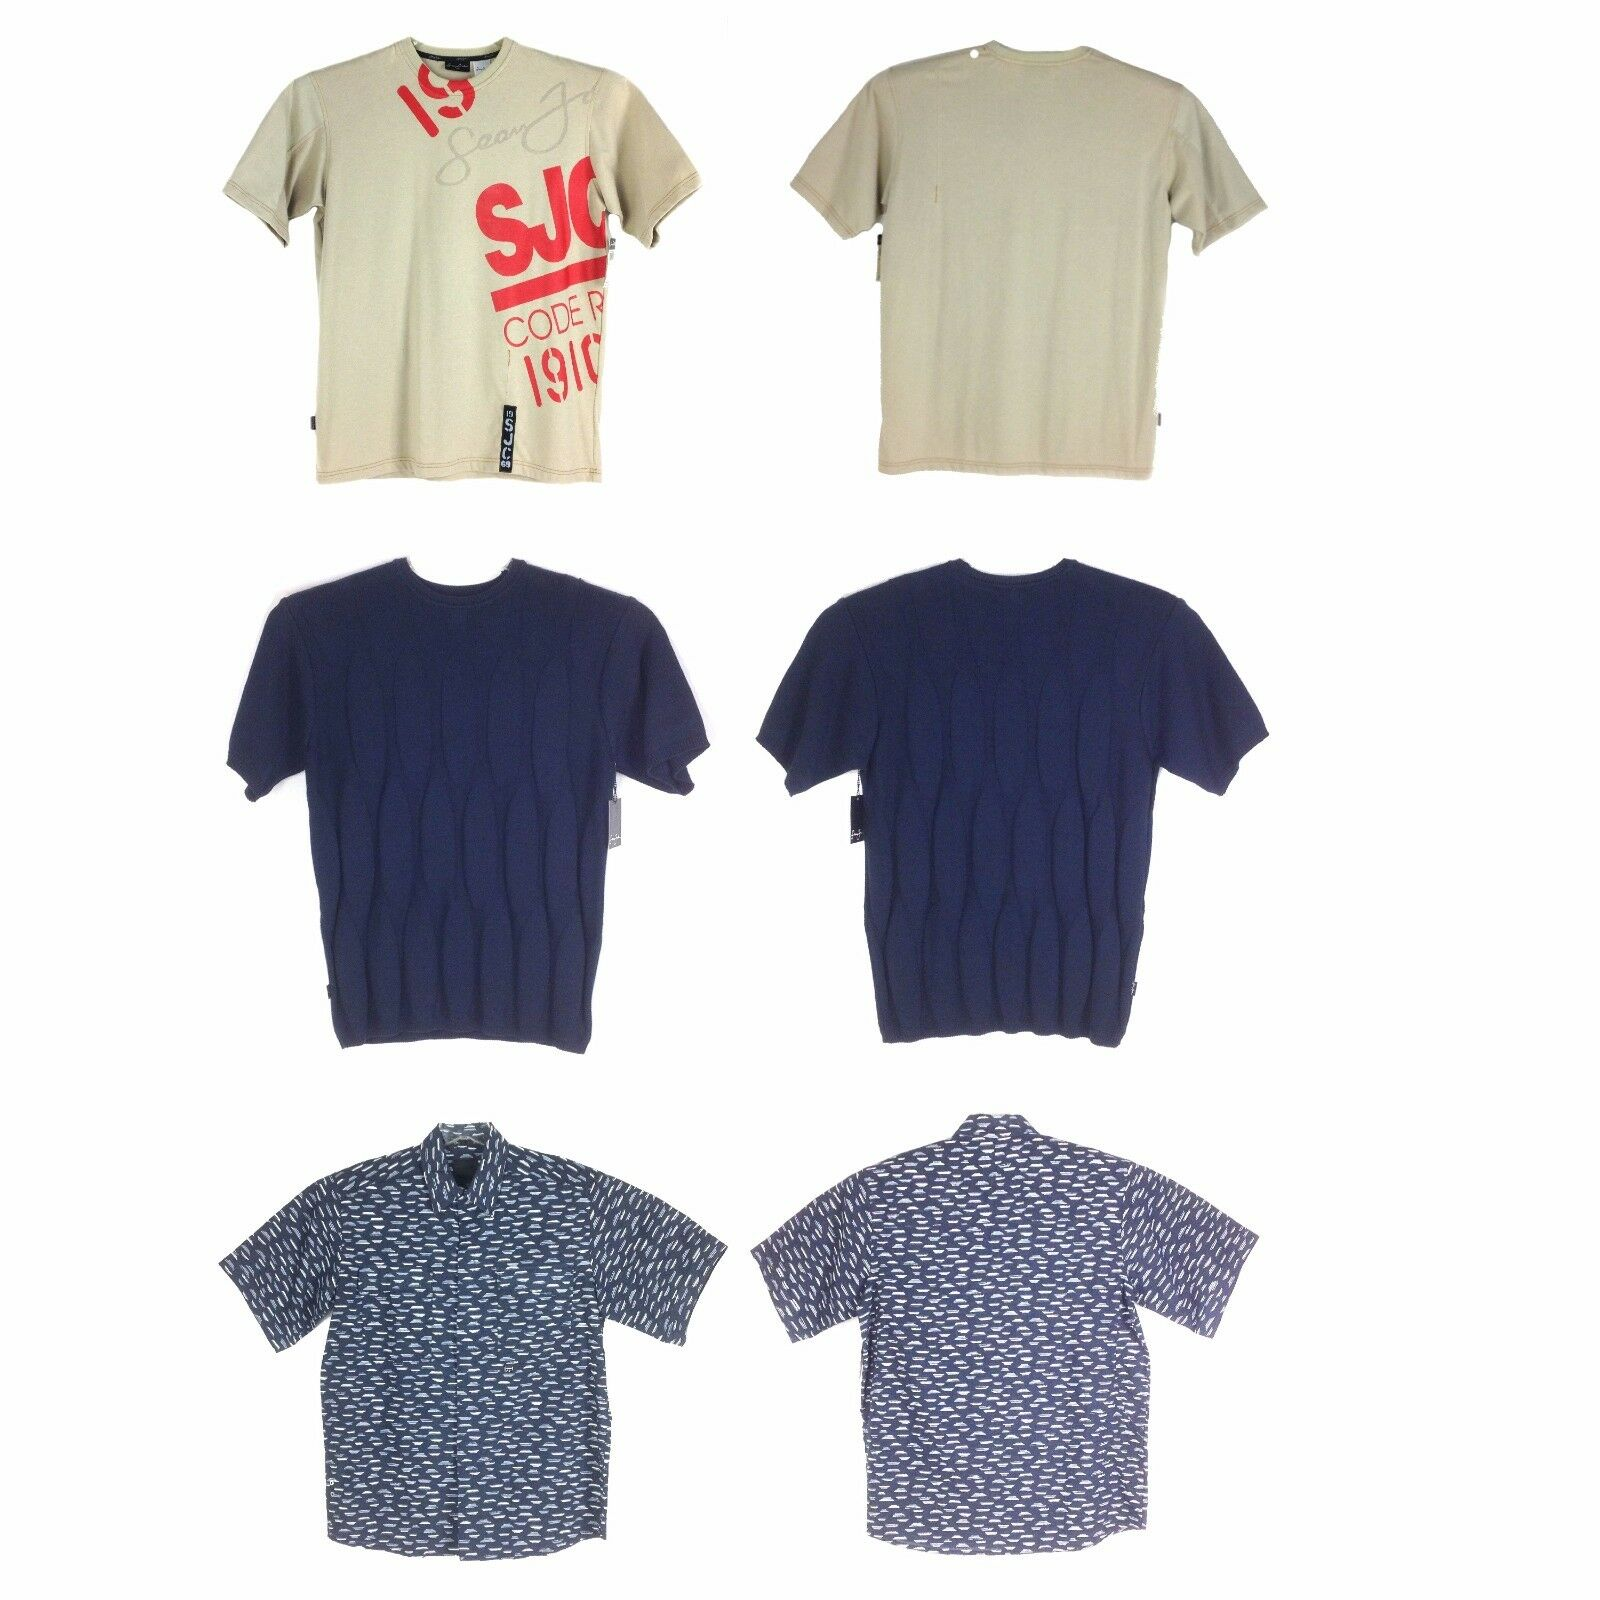 Sean John SHORT SLEEVES MEN'S TOPS, ASSORTED STYLES COLORS, LIMITED SIZES